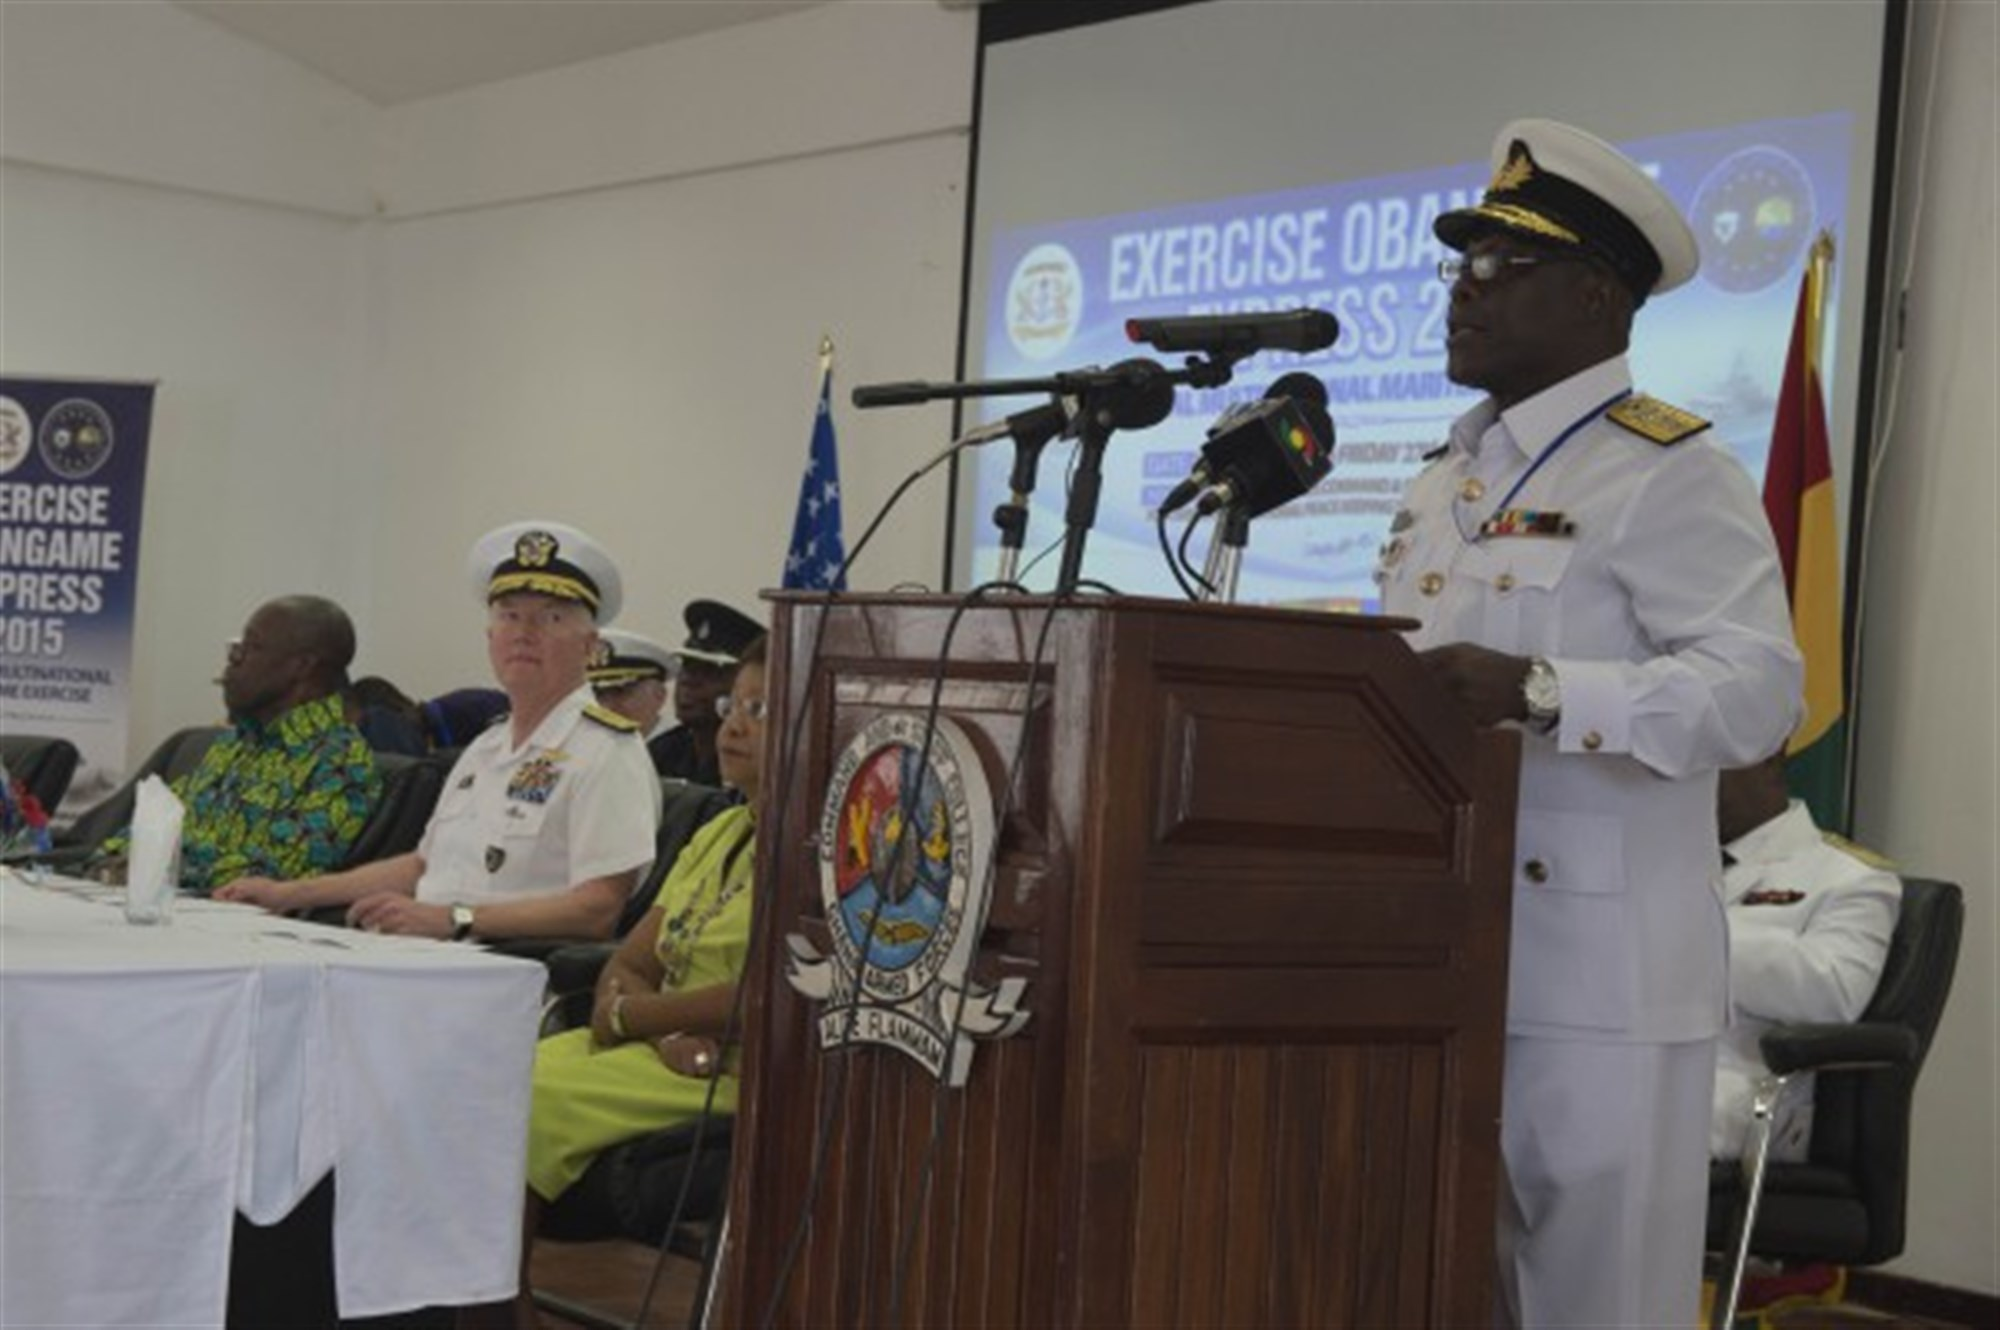 Ghanaian Chief of the Naval Staff Rear Adm. Geoffrey Mawuli Biekro speaks during the closing ceremony of Exercise Obangame Express March 27, 2015. Obangame Express is a U.S. Africa Command-sponsored multinational maritime exercise designed to increase maritime safety and security in the Gulf of Guinea. (U.S. Navy photo by Mass Communication Specialist 1st Class David R. Krigbaum/Released)